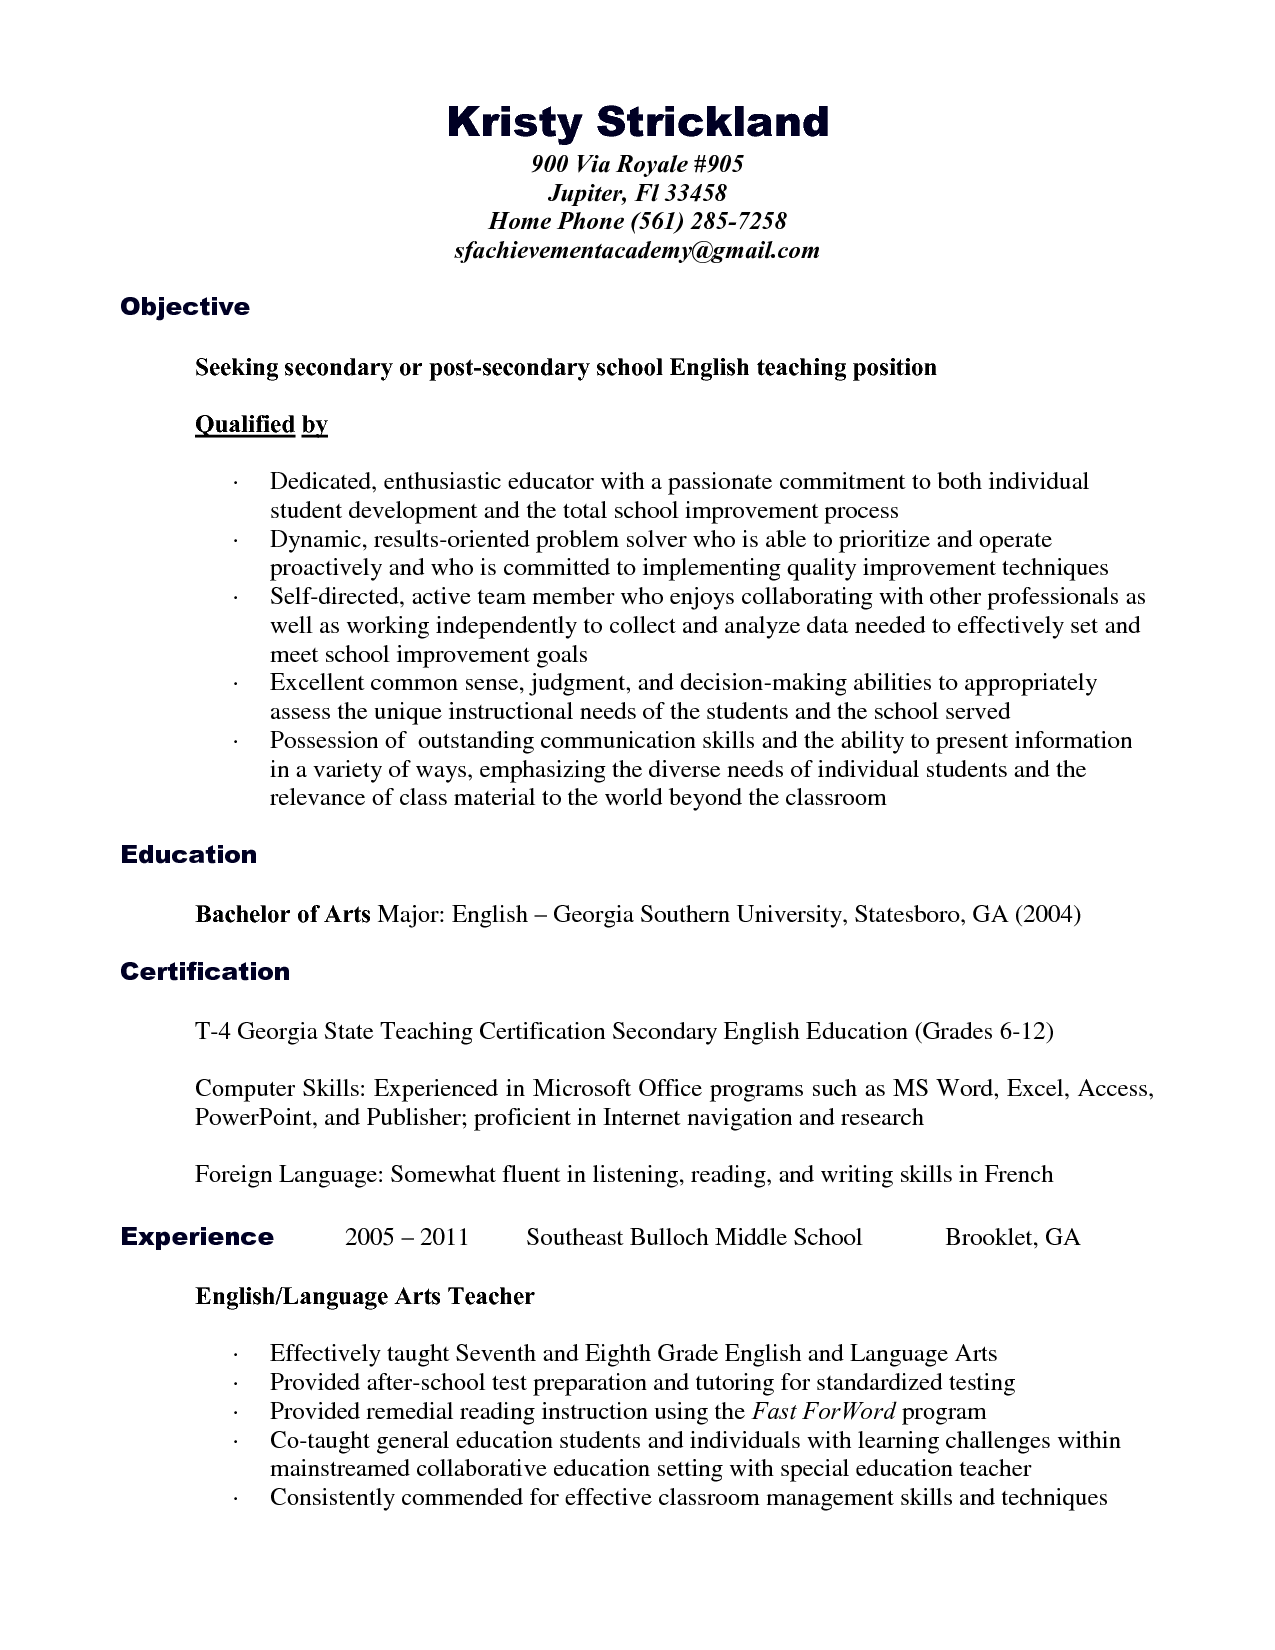 Coaching Resume Examples Cheerleading Coach Resume Google Search Professional